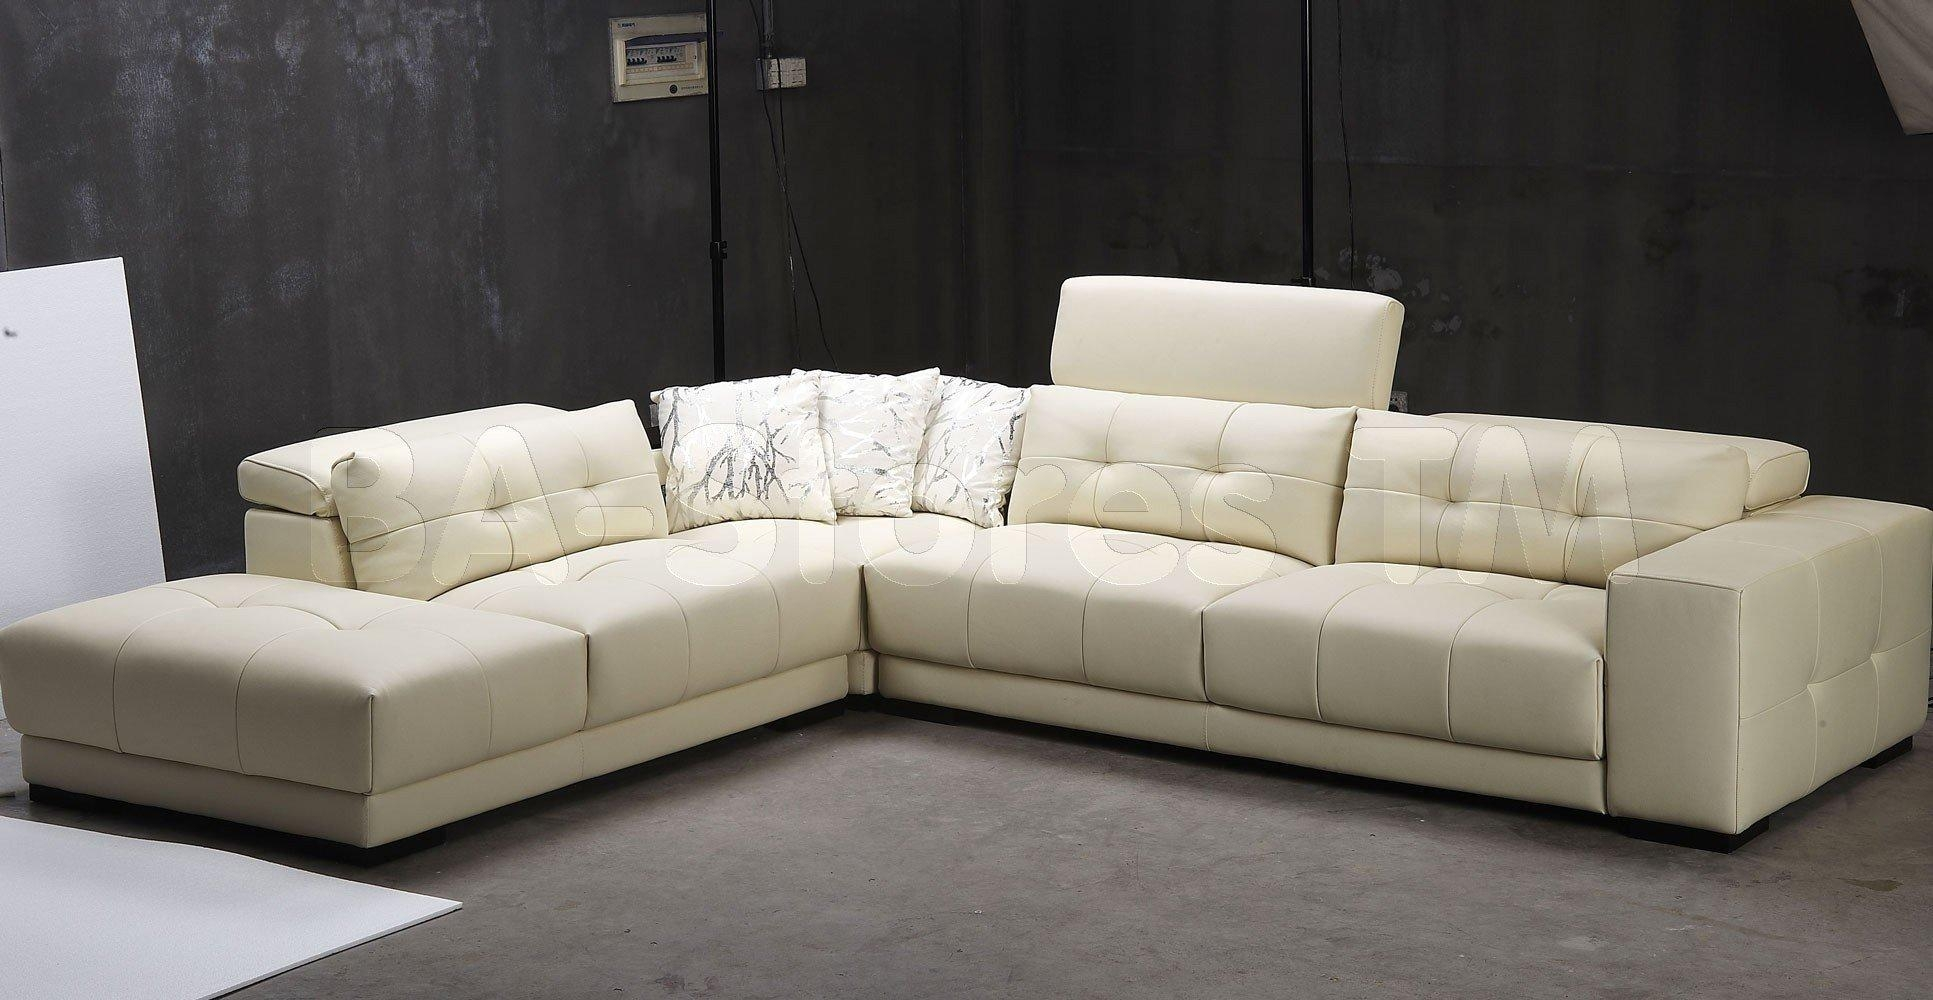 Cream L Leather Floating Sofa On Grey Carpet Of Minimalist White With Floating Sofas (View 13 of 20)